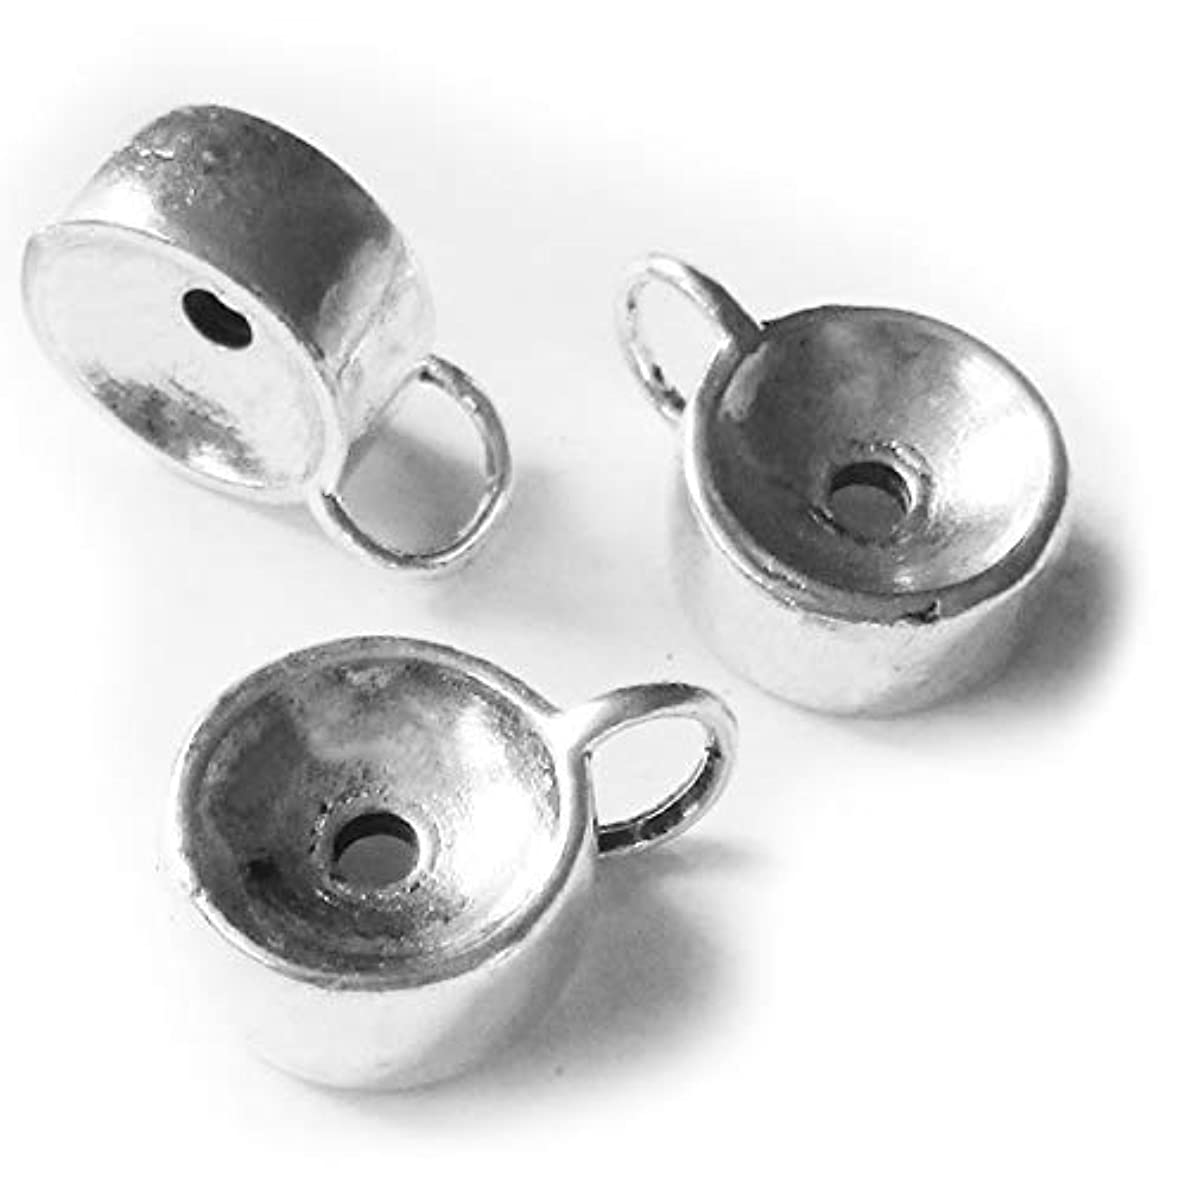 Heather's cf 25 Pieces Silver Tone Drum Bail Closed Loop Spacer Connector Findings Jewelry Making 16X12X6mm